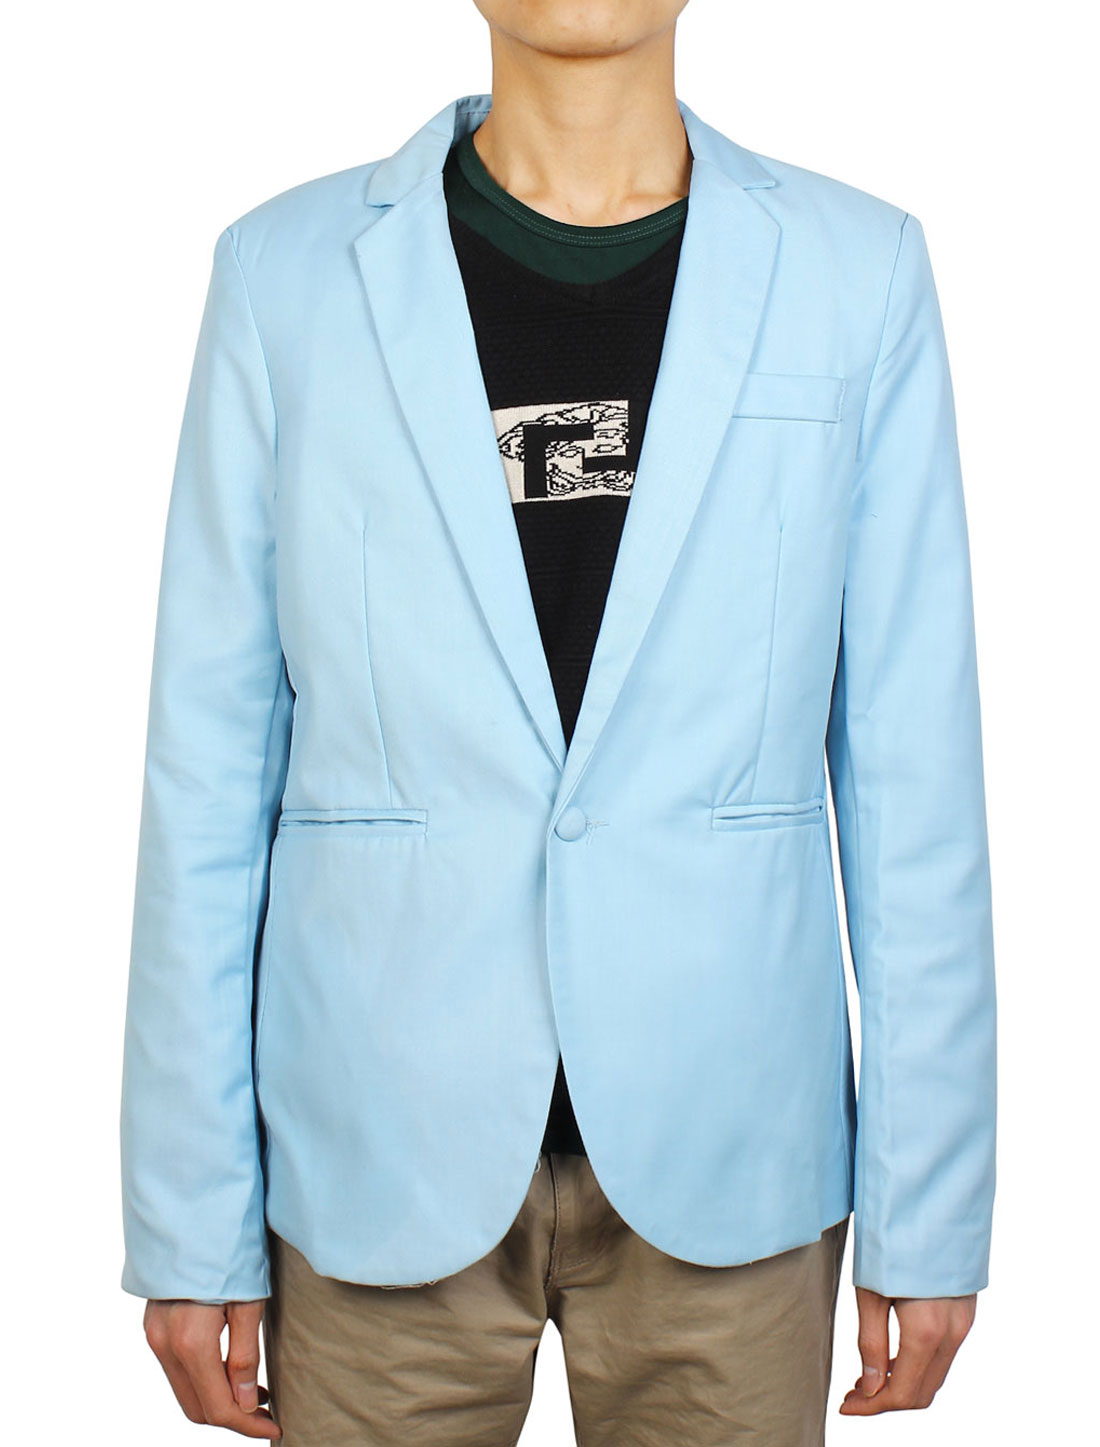 Men Peaked Lapel Button Up Long Sleeve Padded Shoulders Blazer Light Blue M